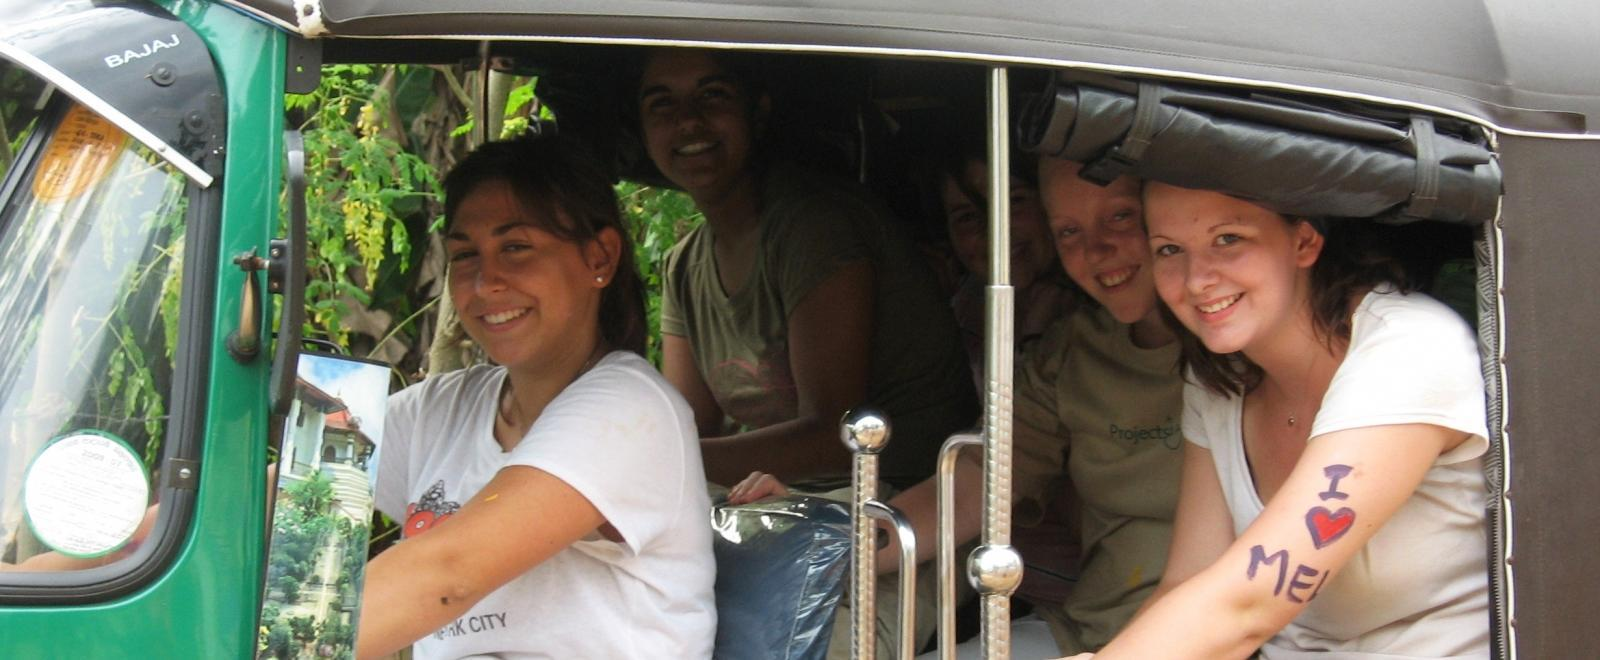 Projects Abroad volunteers travel around Sri Lanka in a tuk tuk as part of the tour.